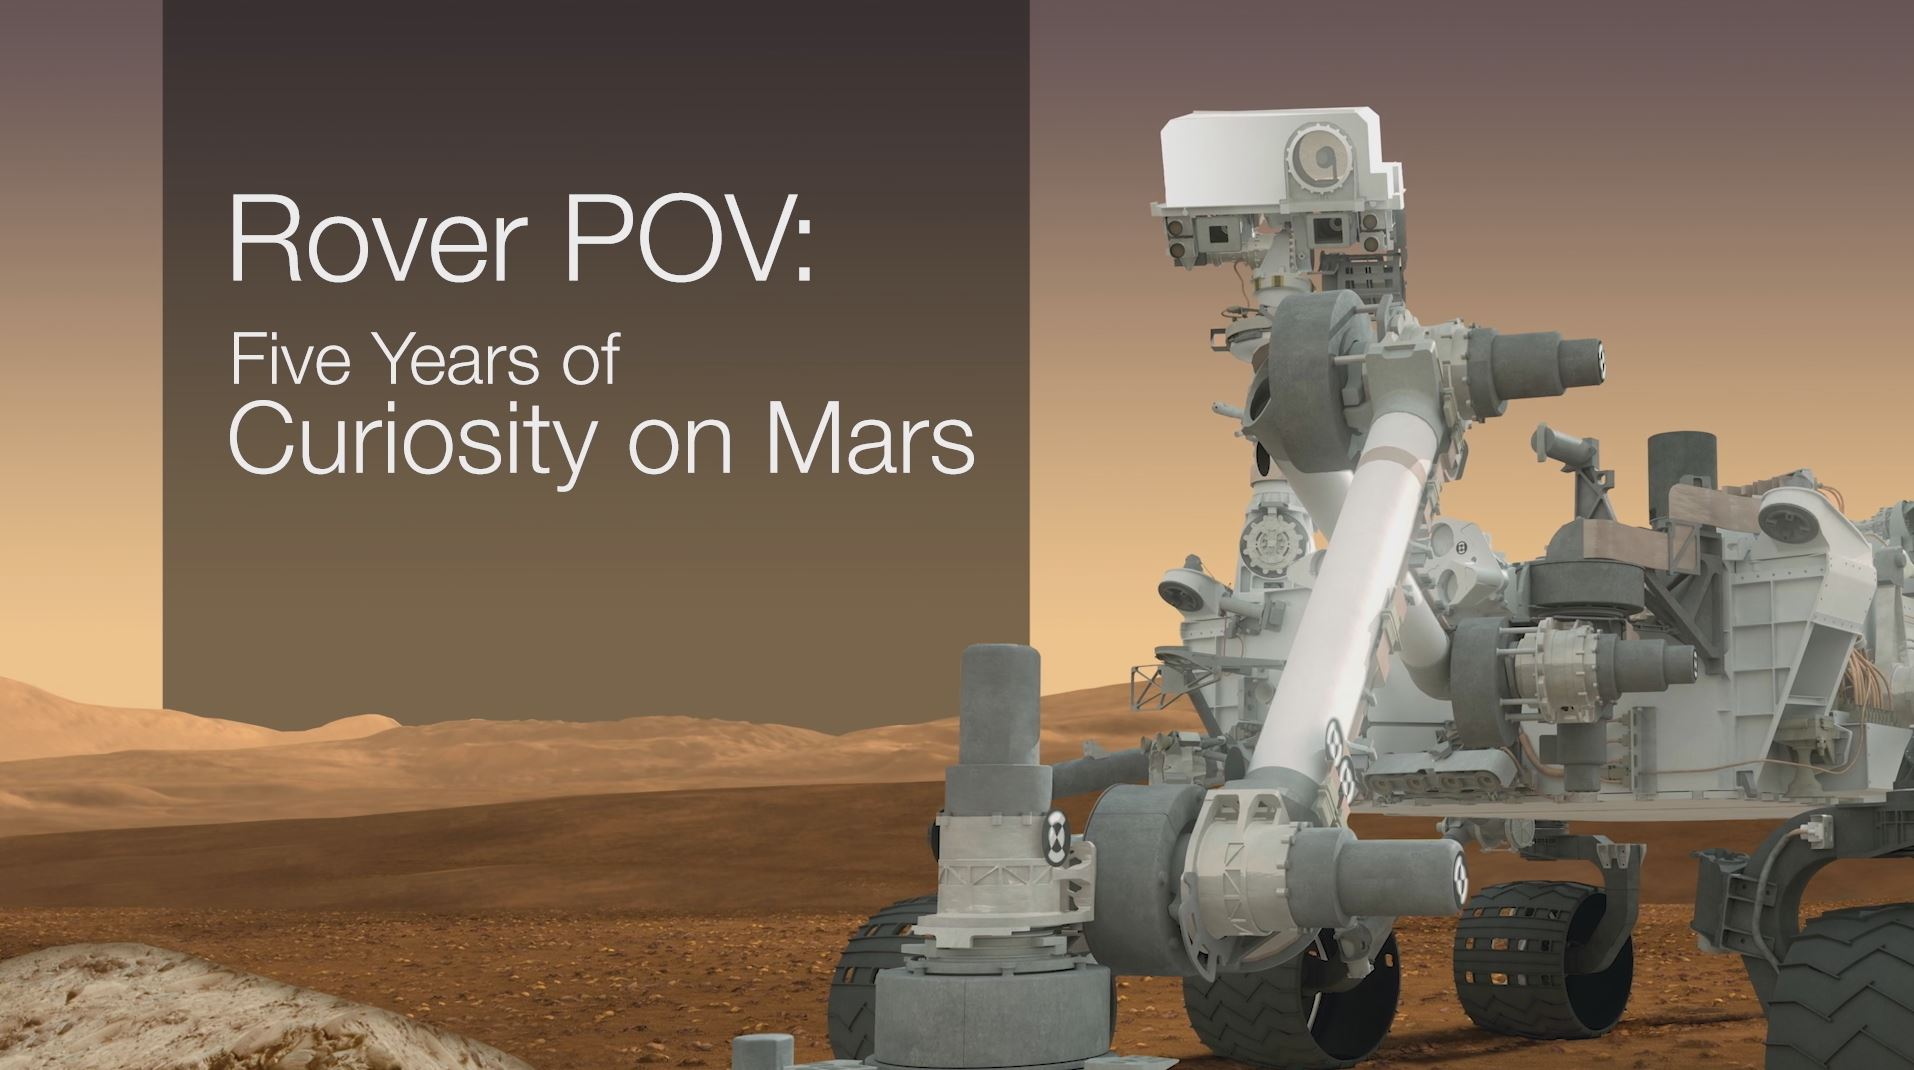 see the video 'Rover POV: Five Years of Curiosity on Mars'